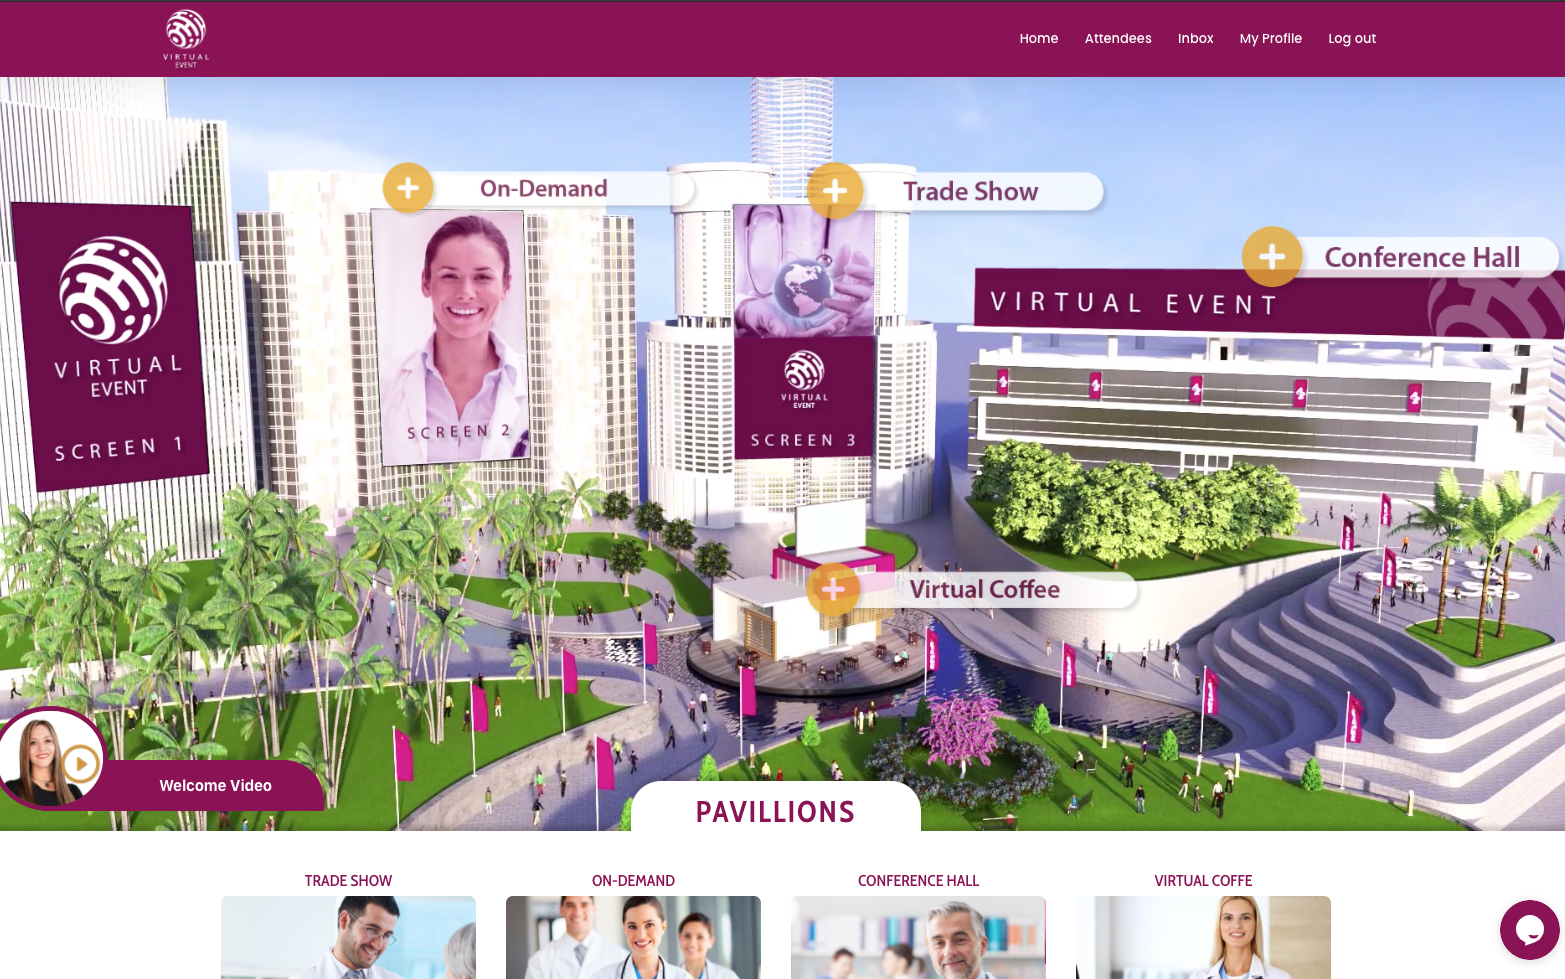 Virtual Event Landing Page - courtesy of Ebizont and their event platform